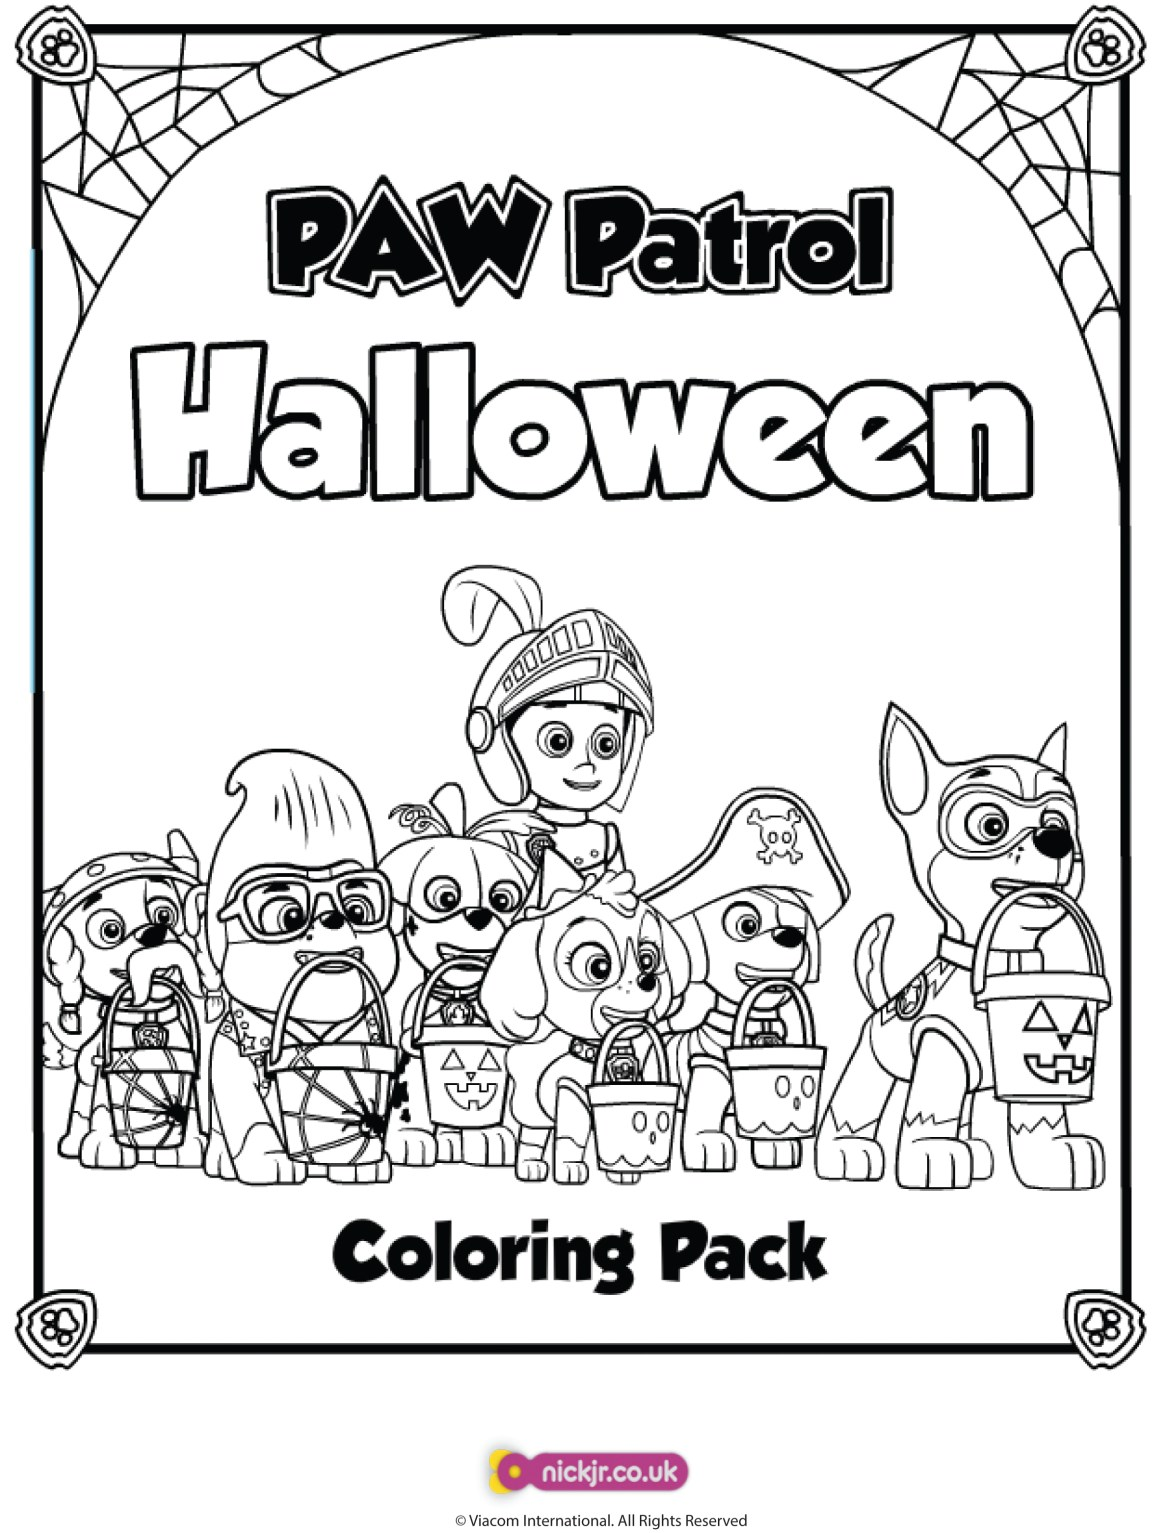 Paw Patrol Halloween colouring page